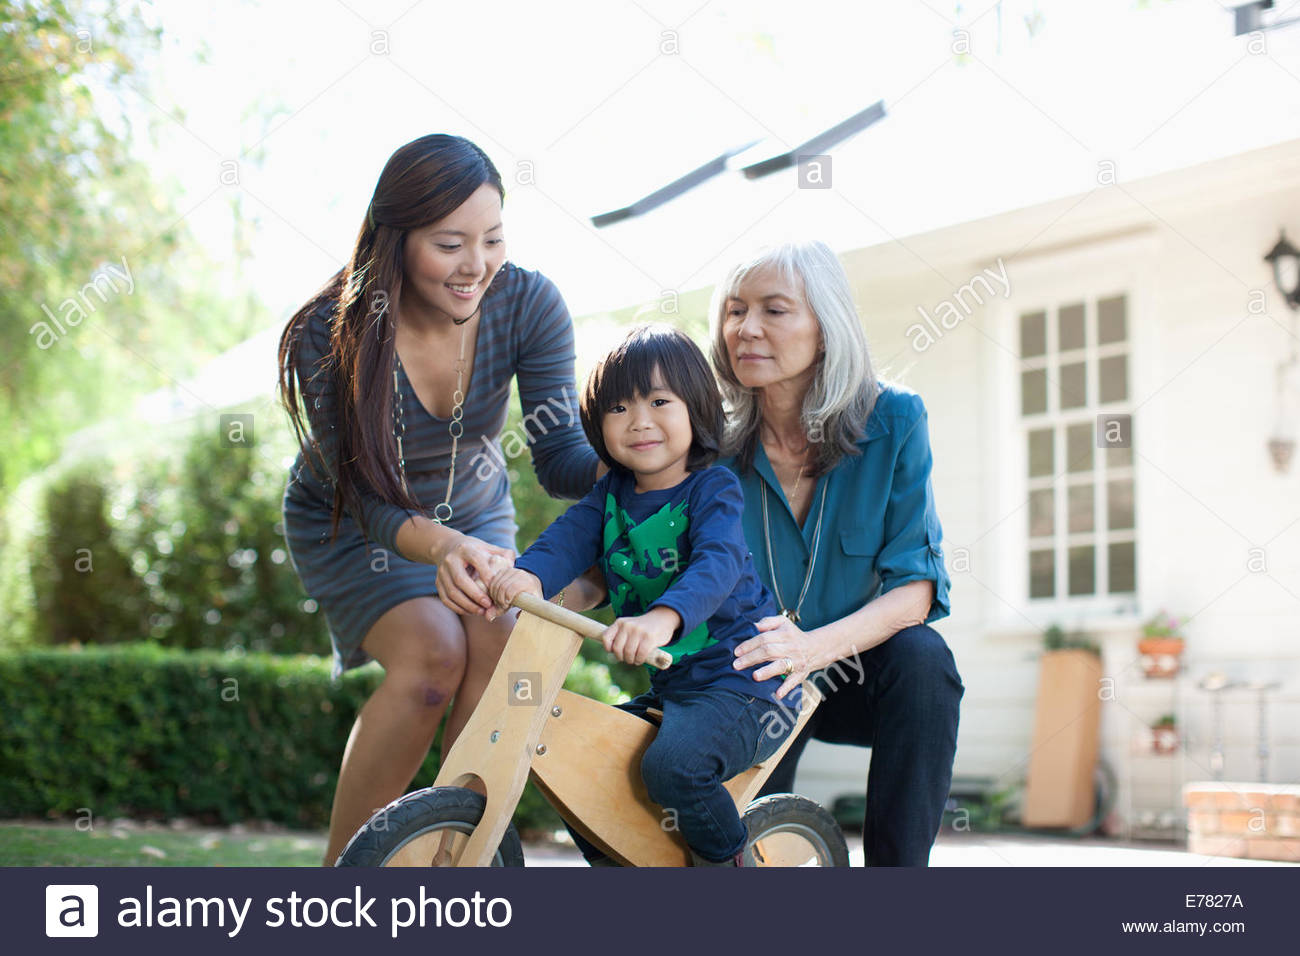 Mother and grandmother pushing boy on tricycle - Stock Image